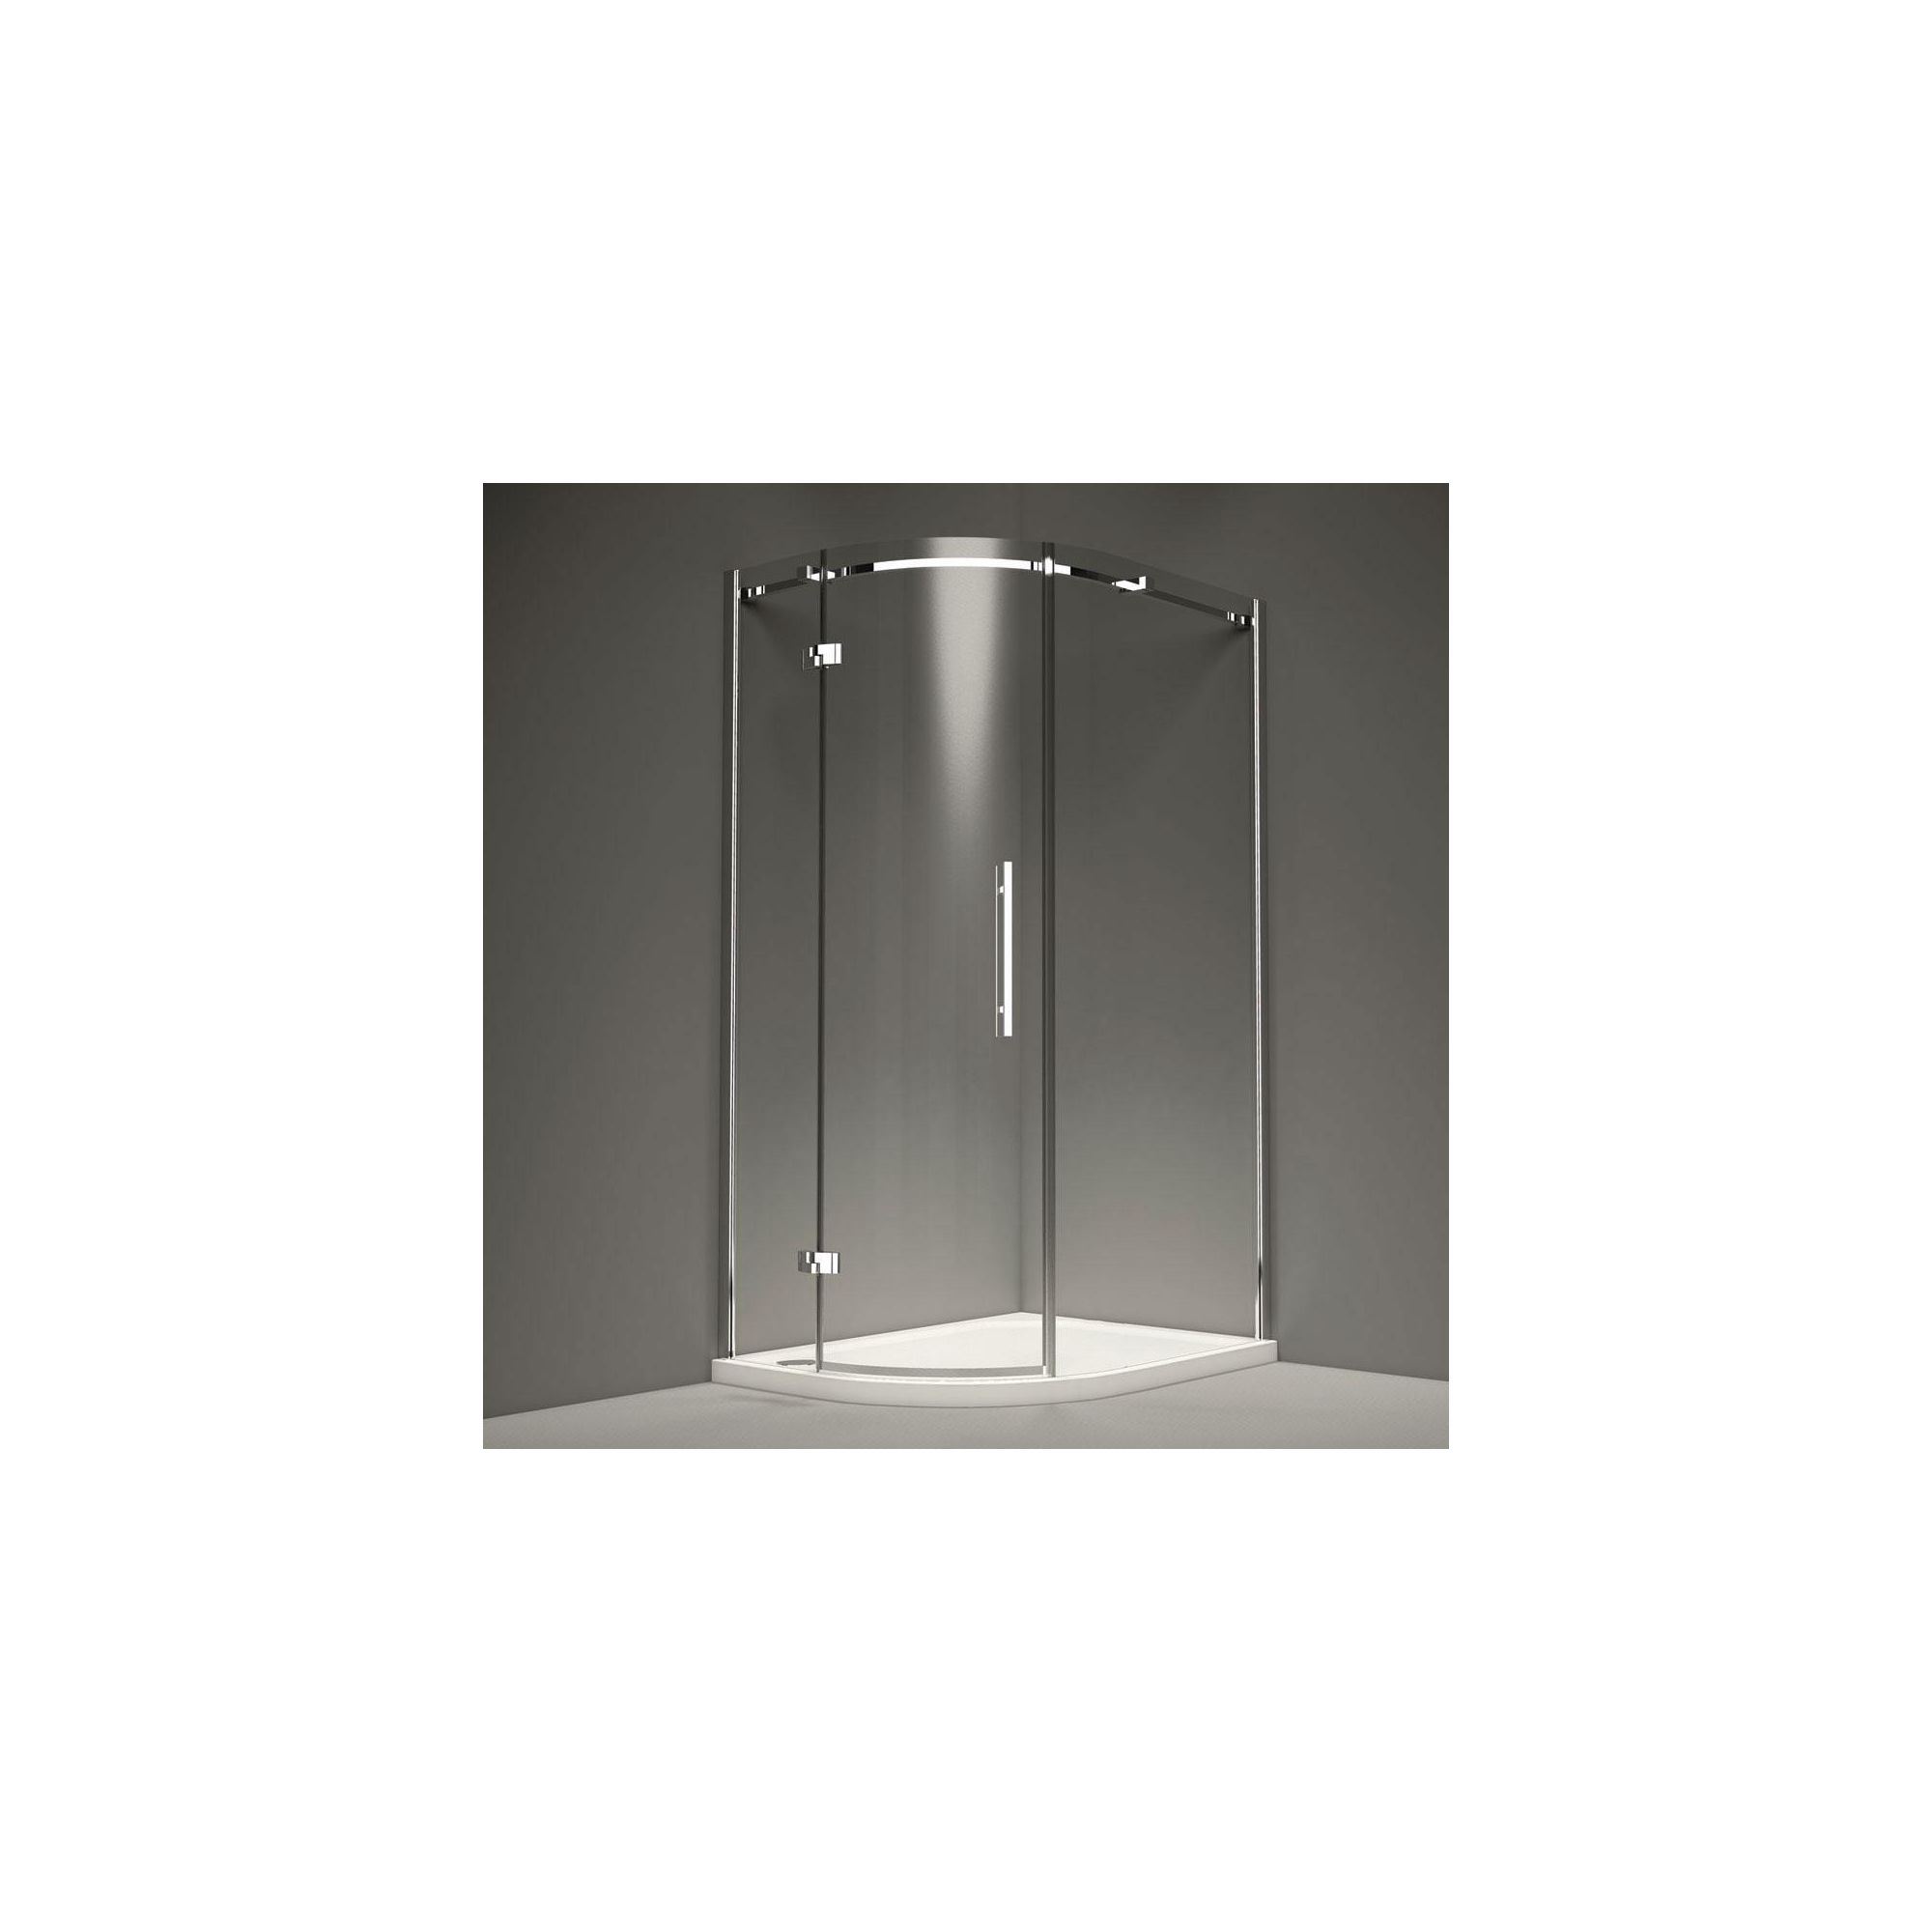 Merlyn Series 9 Offset Quadrant Shower Door, 1200mm x 900mm, 8mm Glass, Left Handed at Tesco Direct